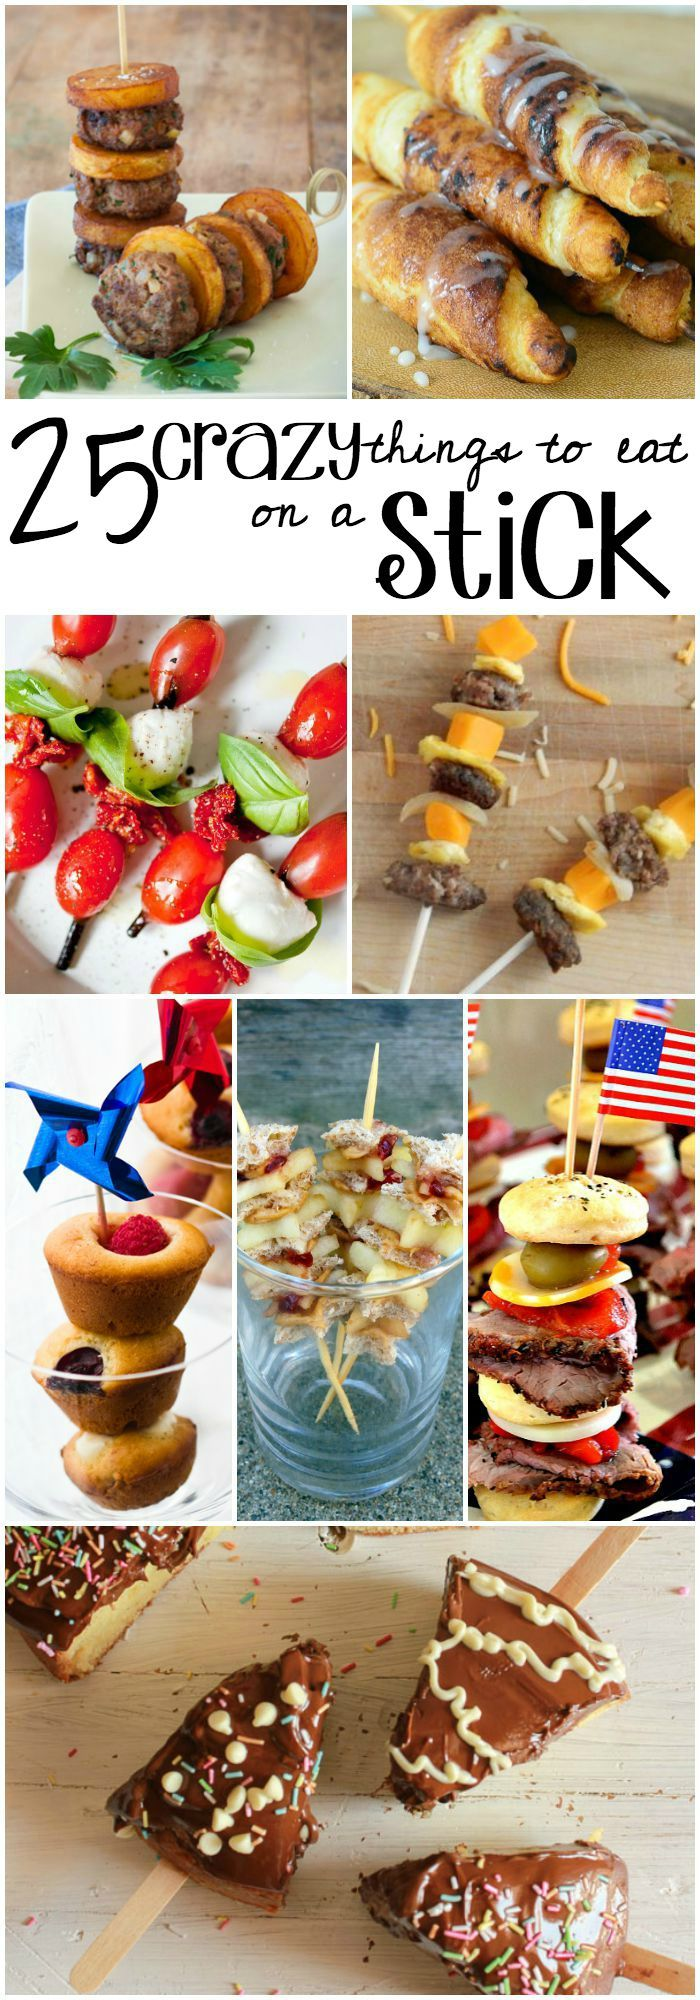 These are 25 seriously crazy things to eat on a stick. The kids will think this is just SO. Much. Fun.